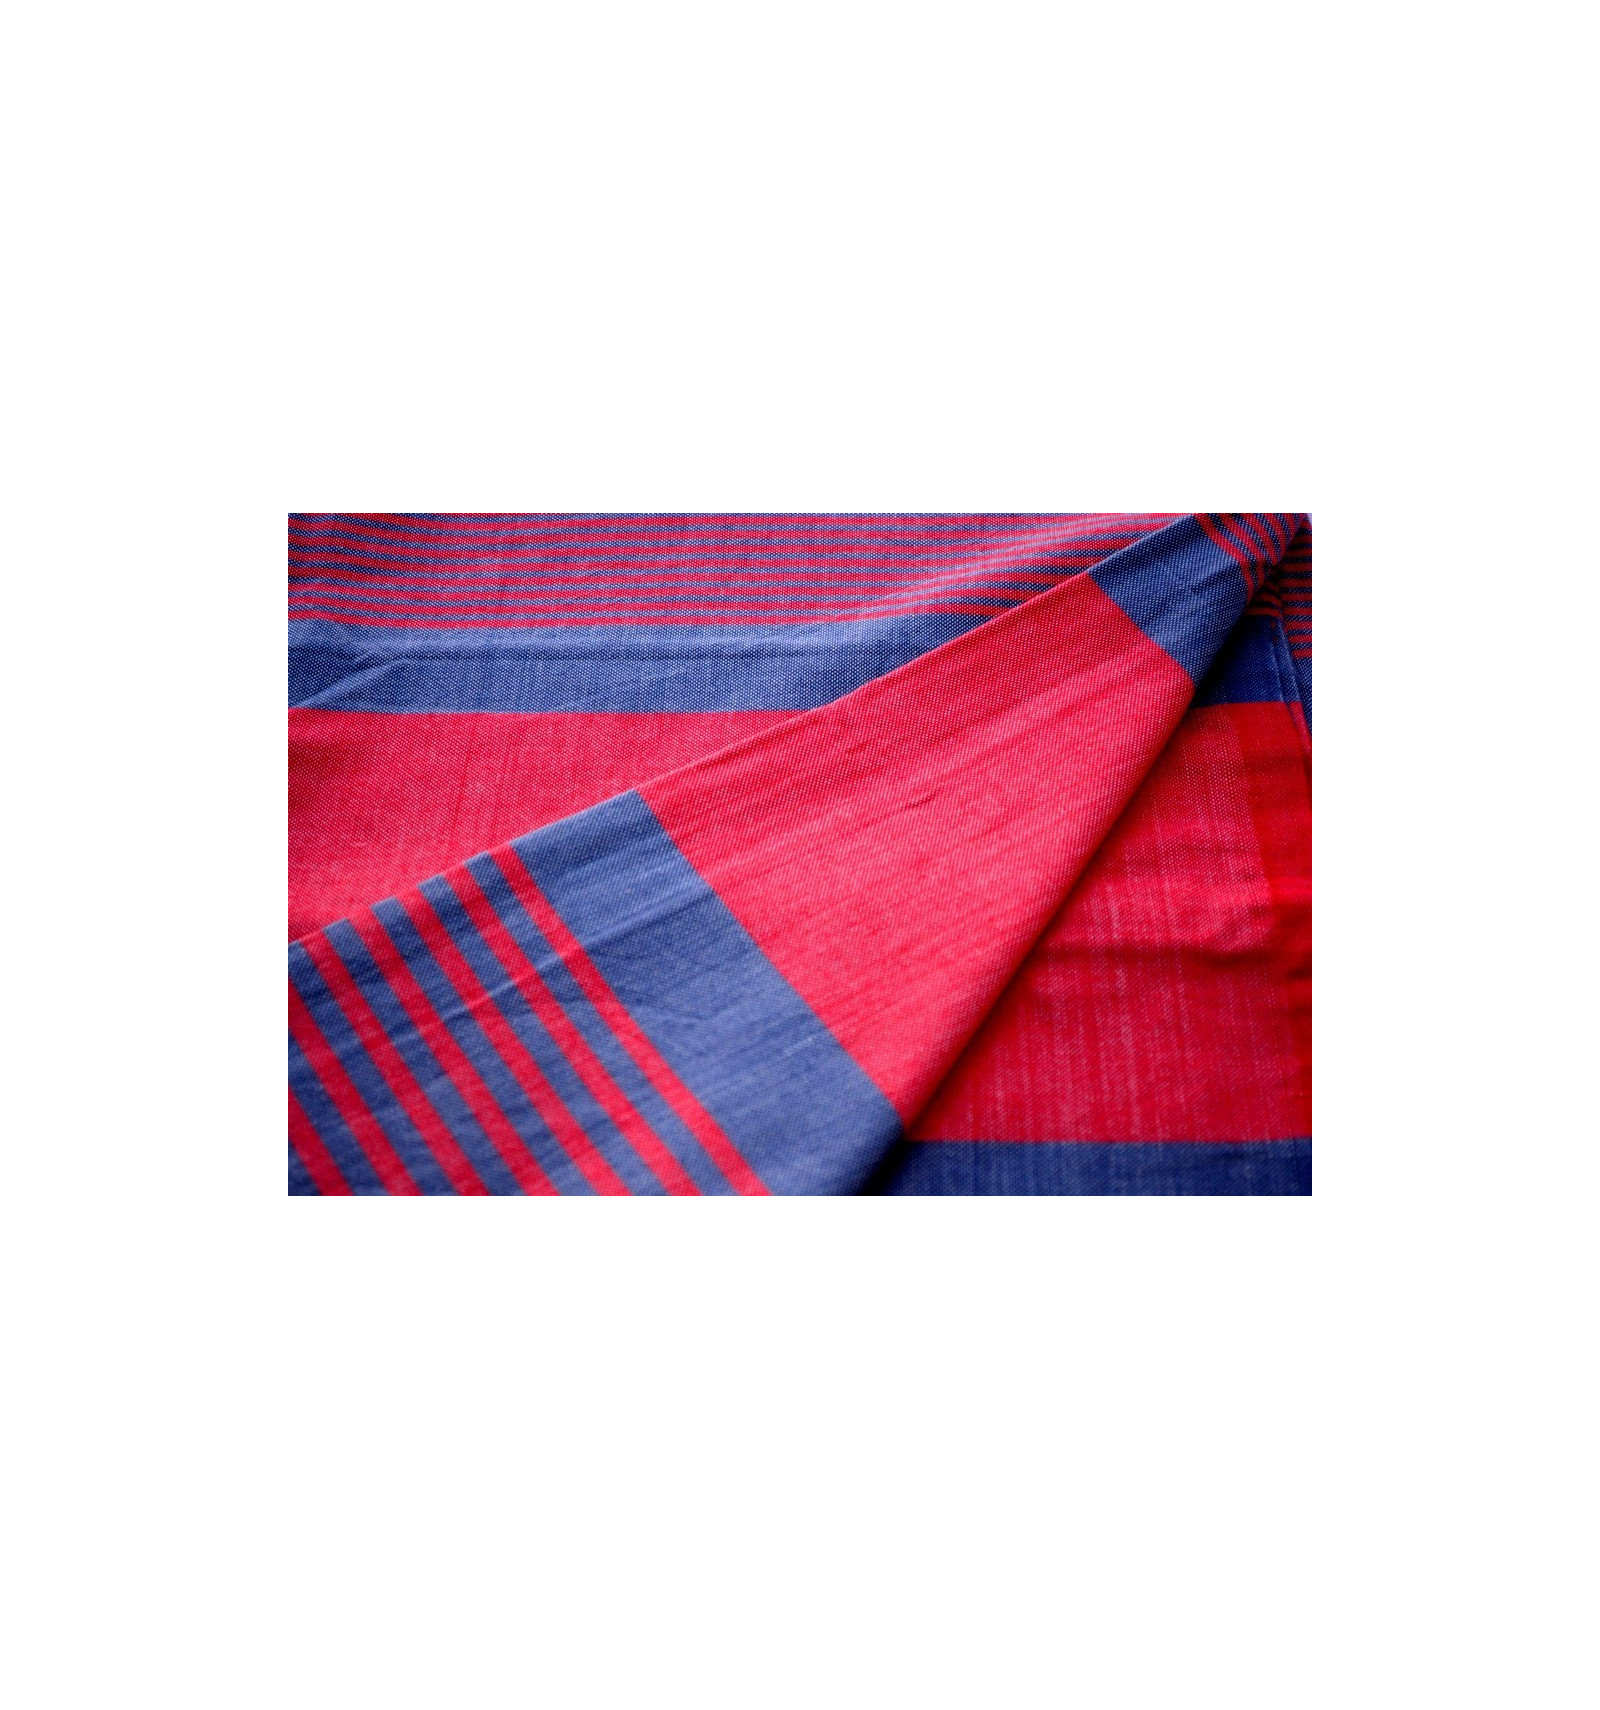 Red Blue Throw Blanket Fascinating Red And Blue Throw Blanket